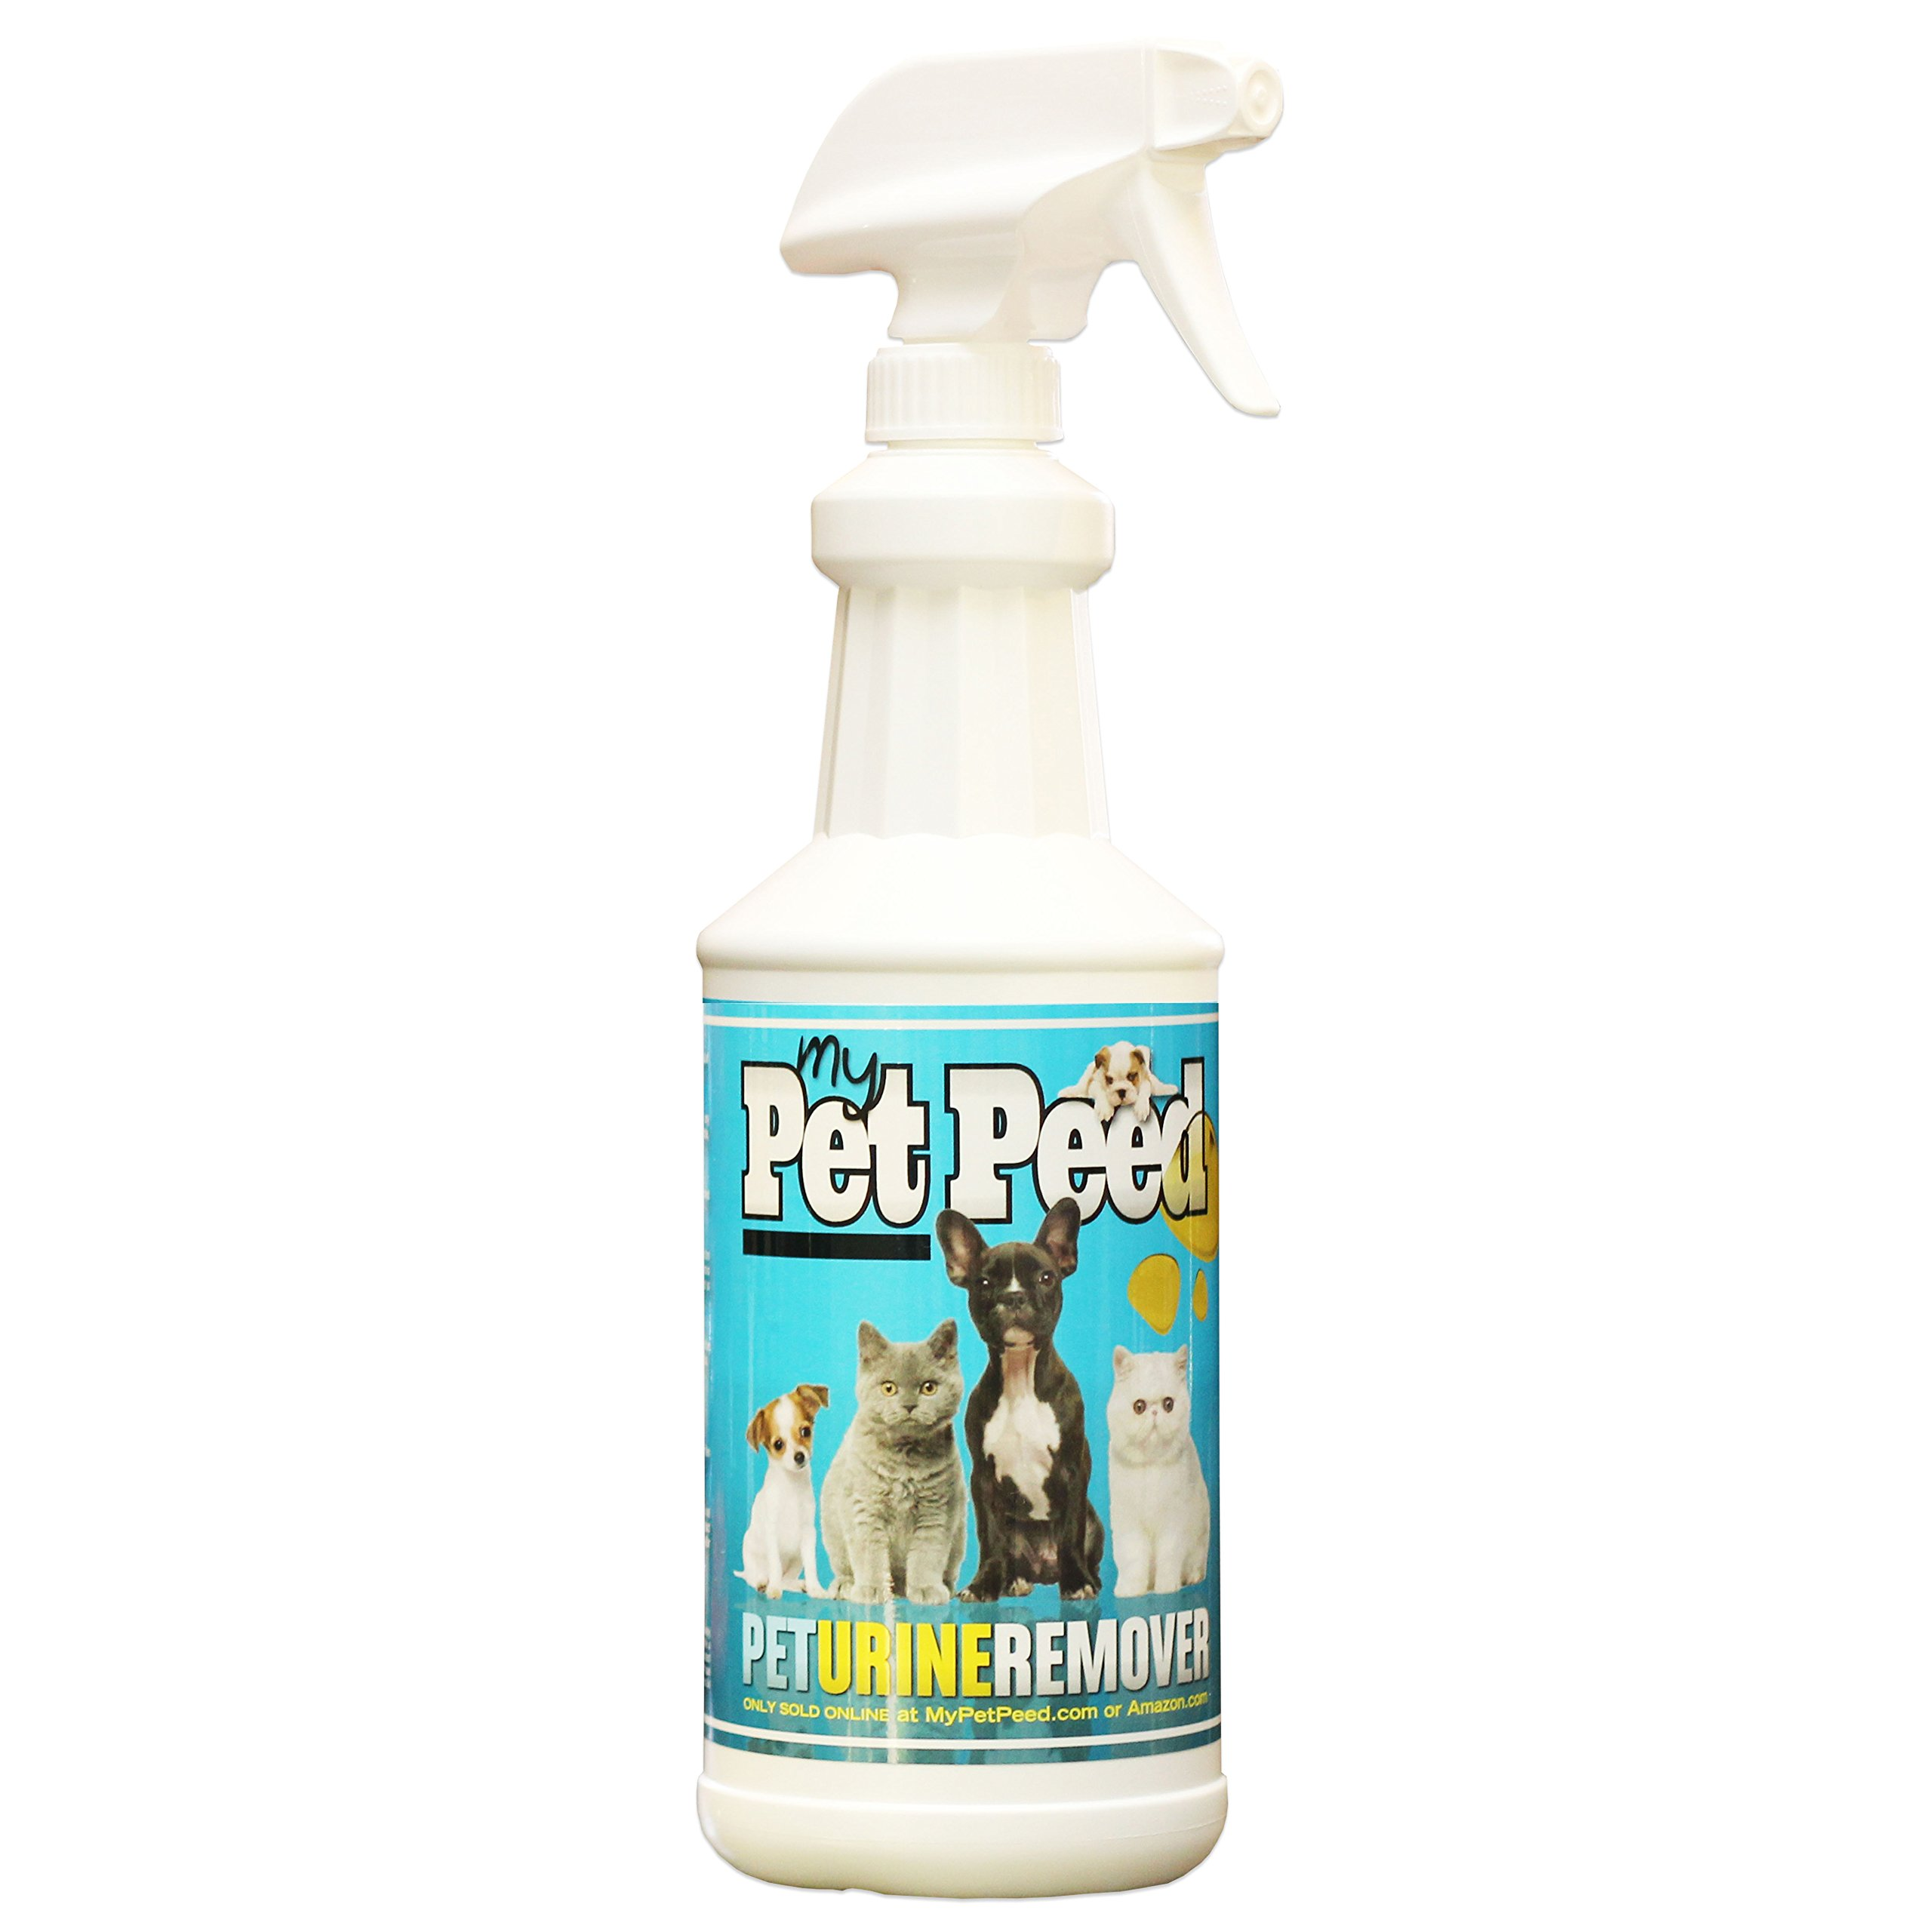 My Pet Peed - Pet Urine Remover (32oz Spray Bottle)GUARANTEED TO WORK OR YOUR (without the hassle of having to return anything) by My Pet Peed